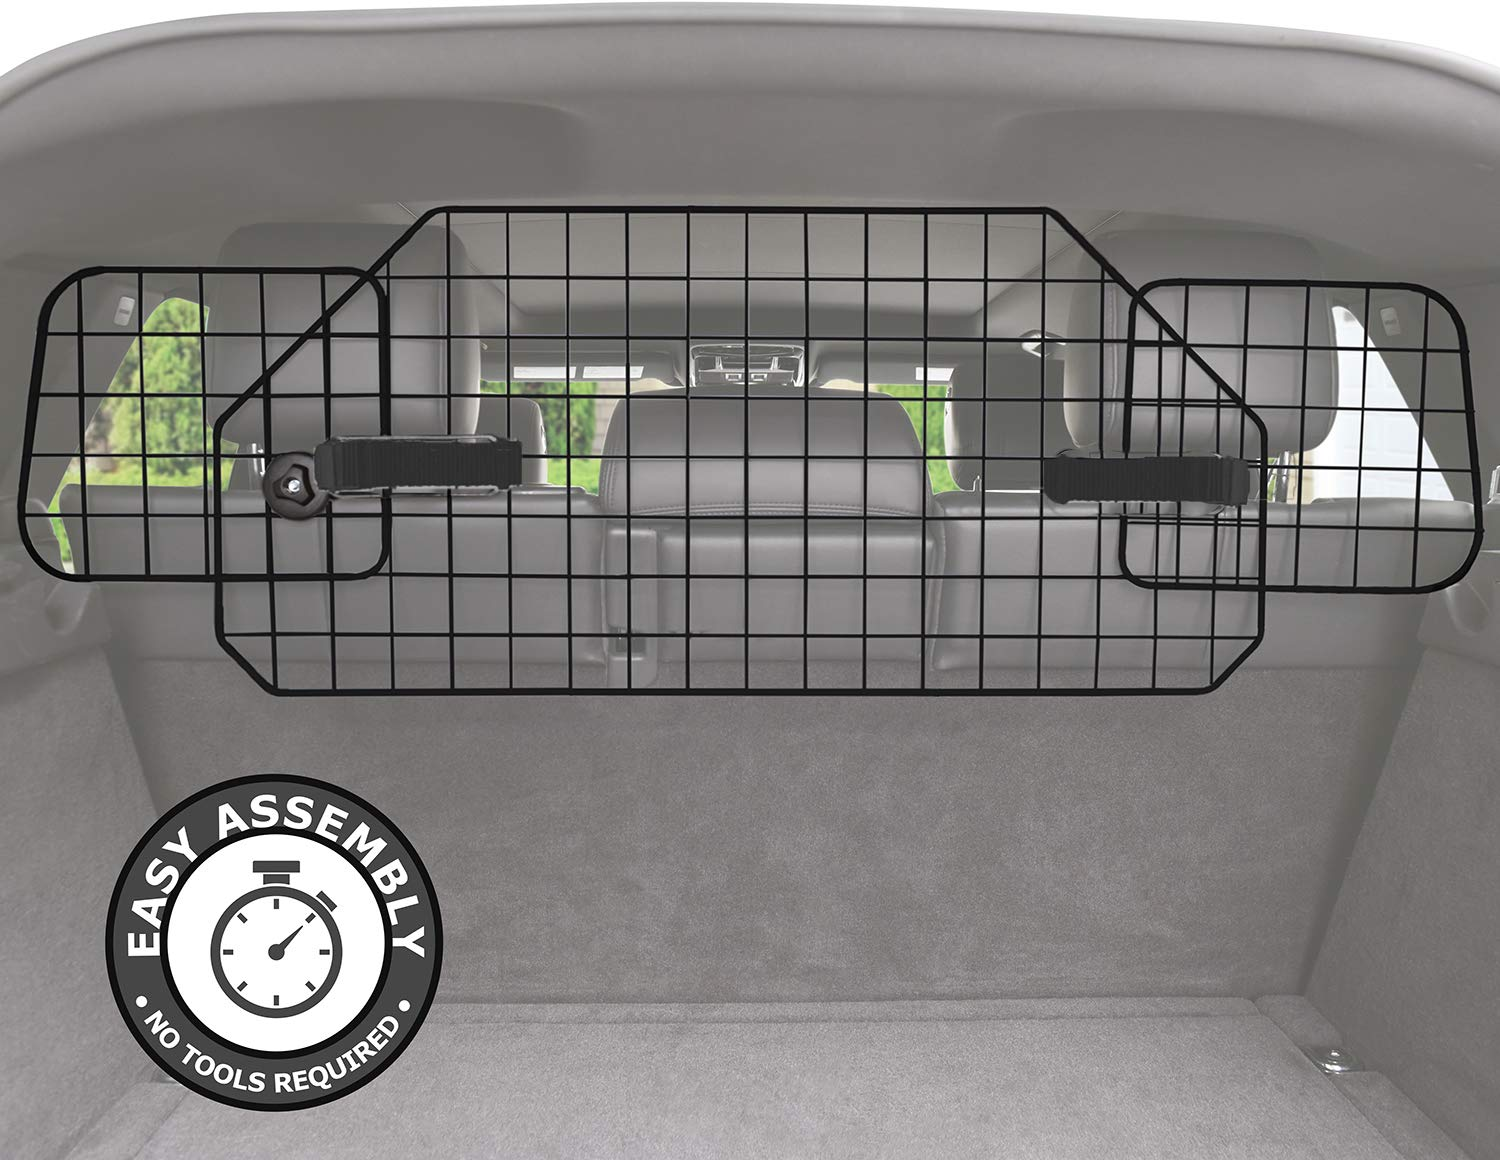 Pawple Dog Barrier for SUV's, Cars & Vehicles, Heavy-Duty - Adjustable Pet Barrier, Universal Fit by Pawple Pets